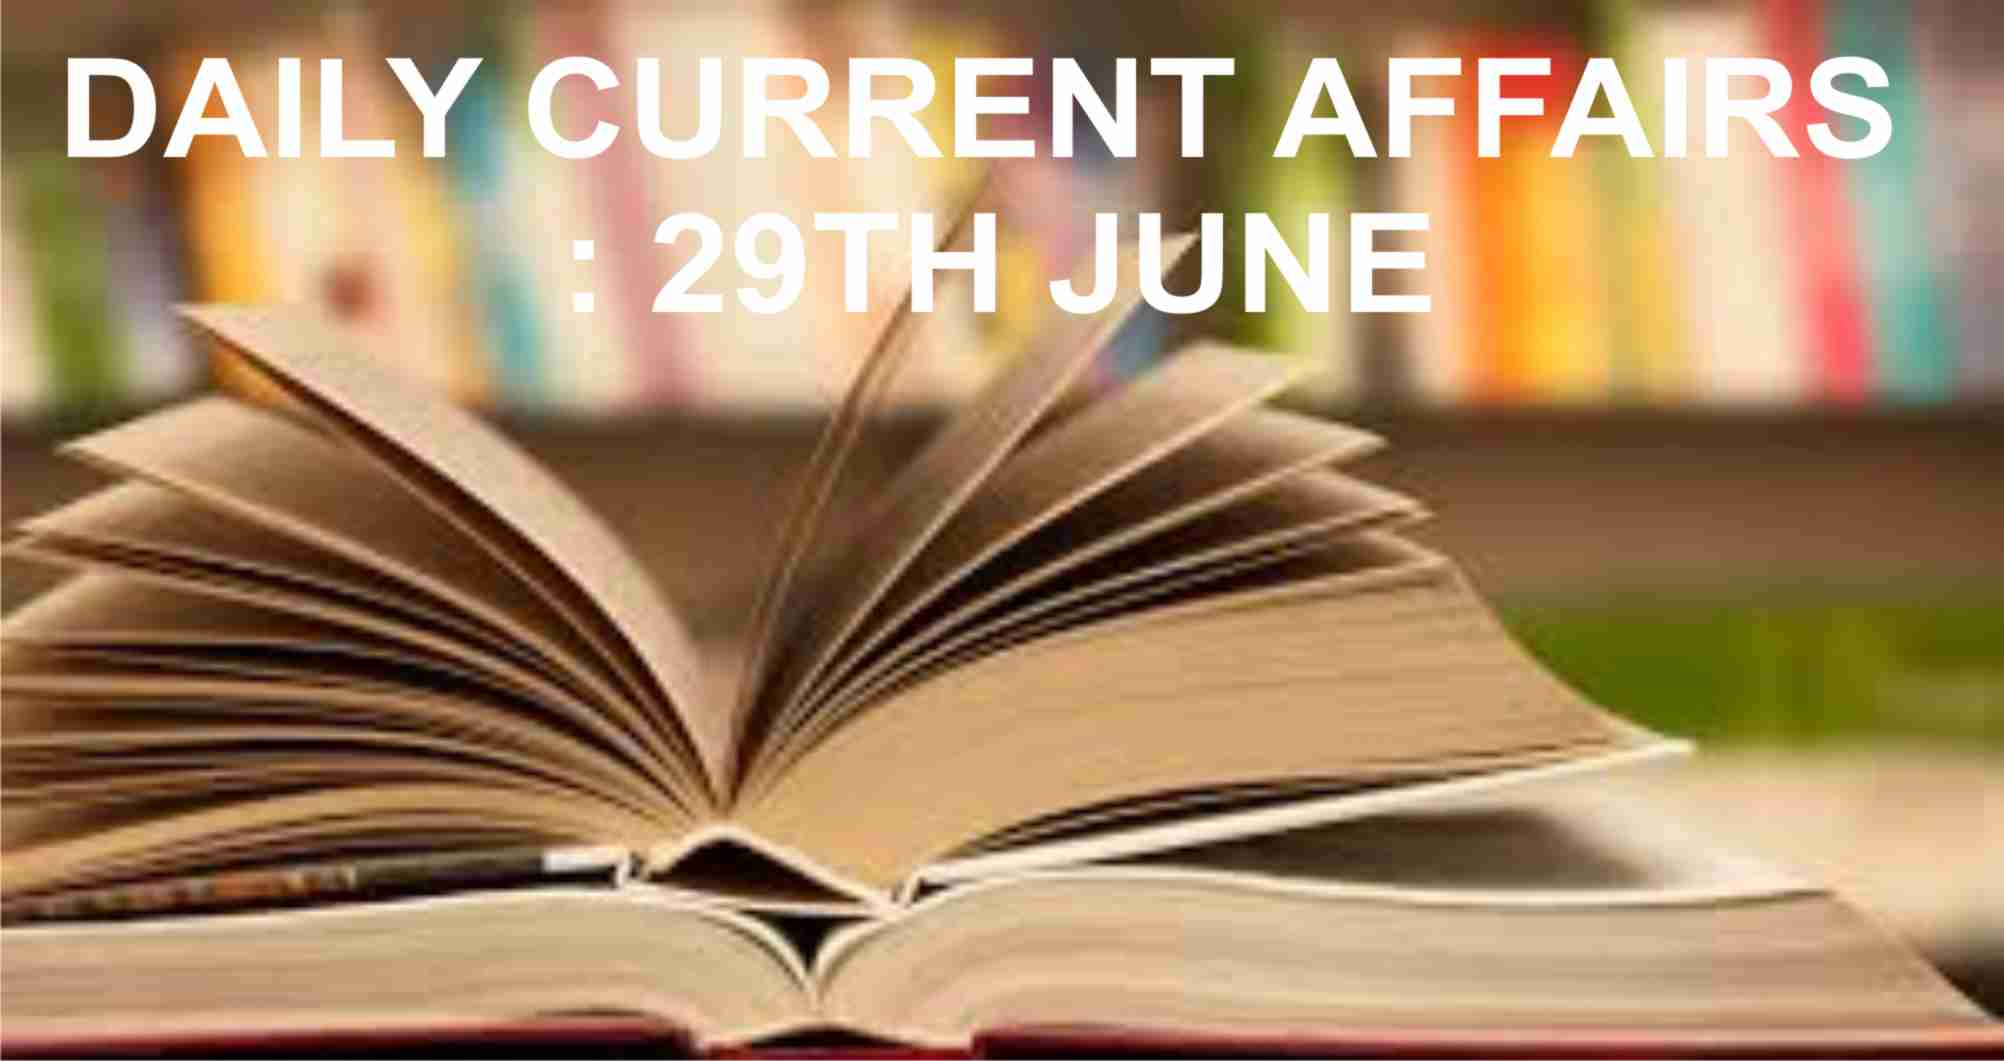 DAILY CURRENT AFFAIRS : 29TH JUNE